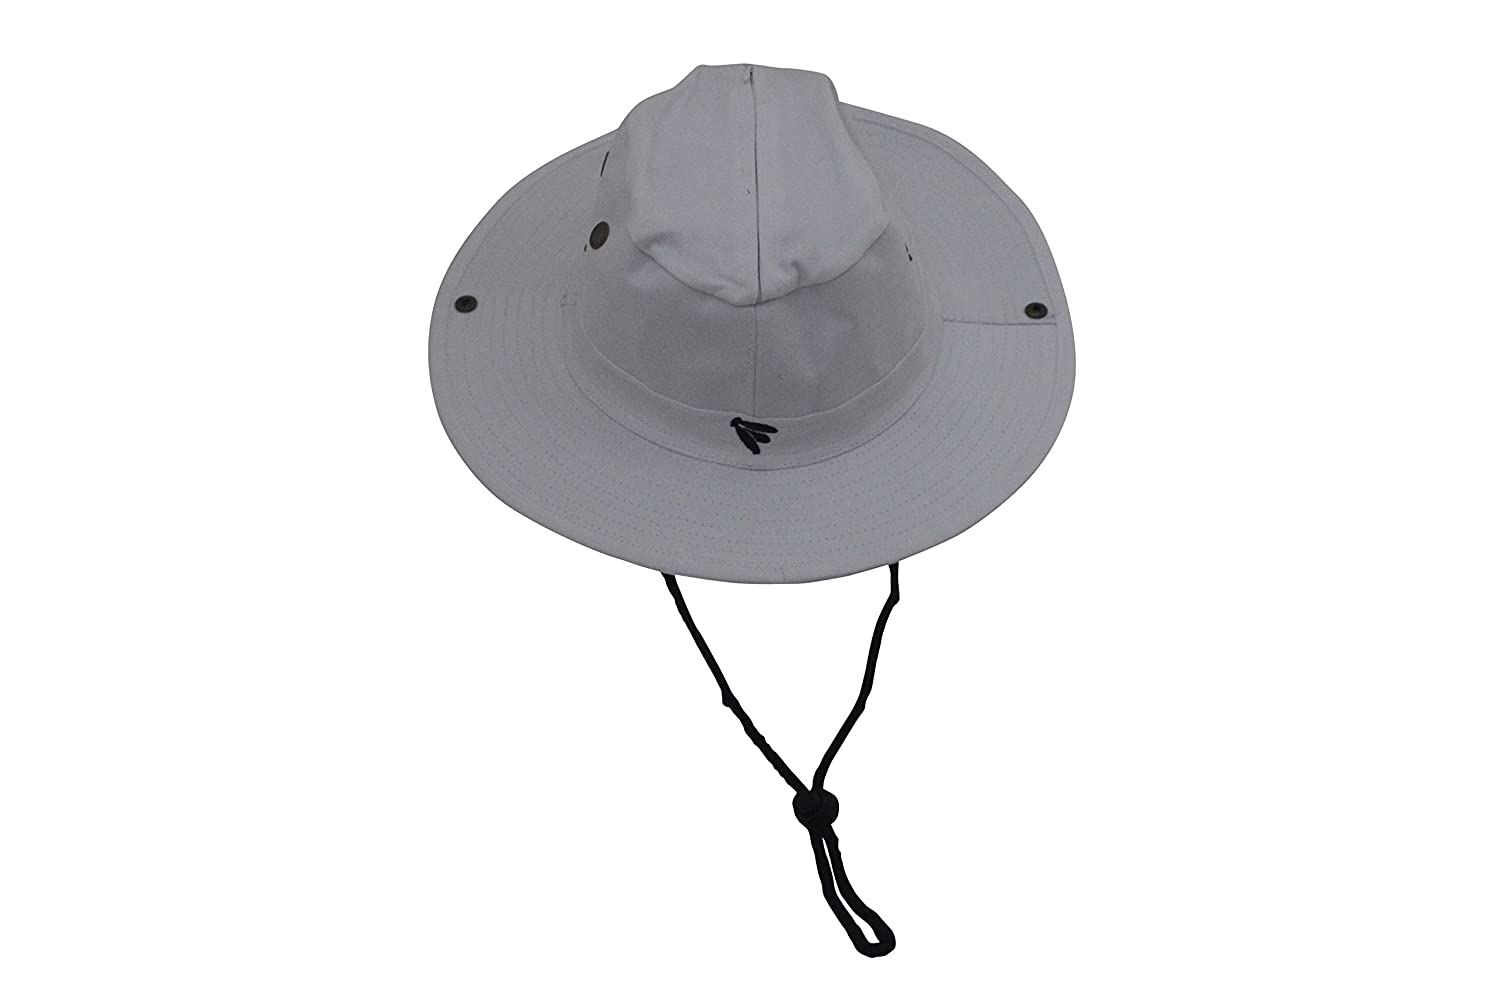 Sun and Bug Protection Bughat 50+ Sun Protection Unisex Trailblazer Mosquito Net Hat bug hat Outdoor Hat Mosquito Hat